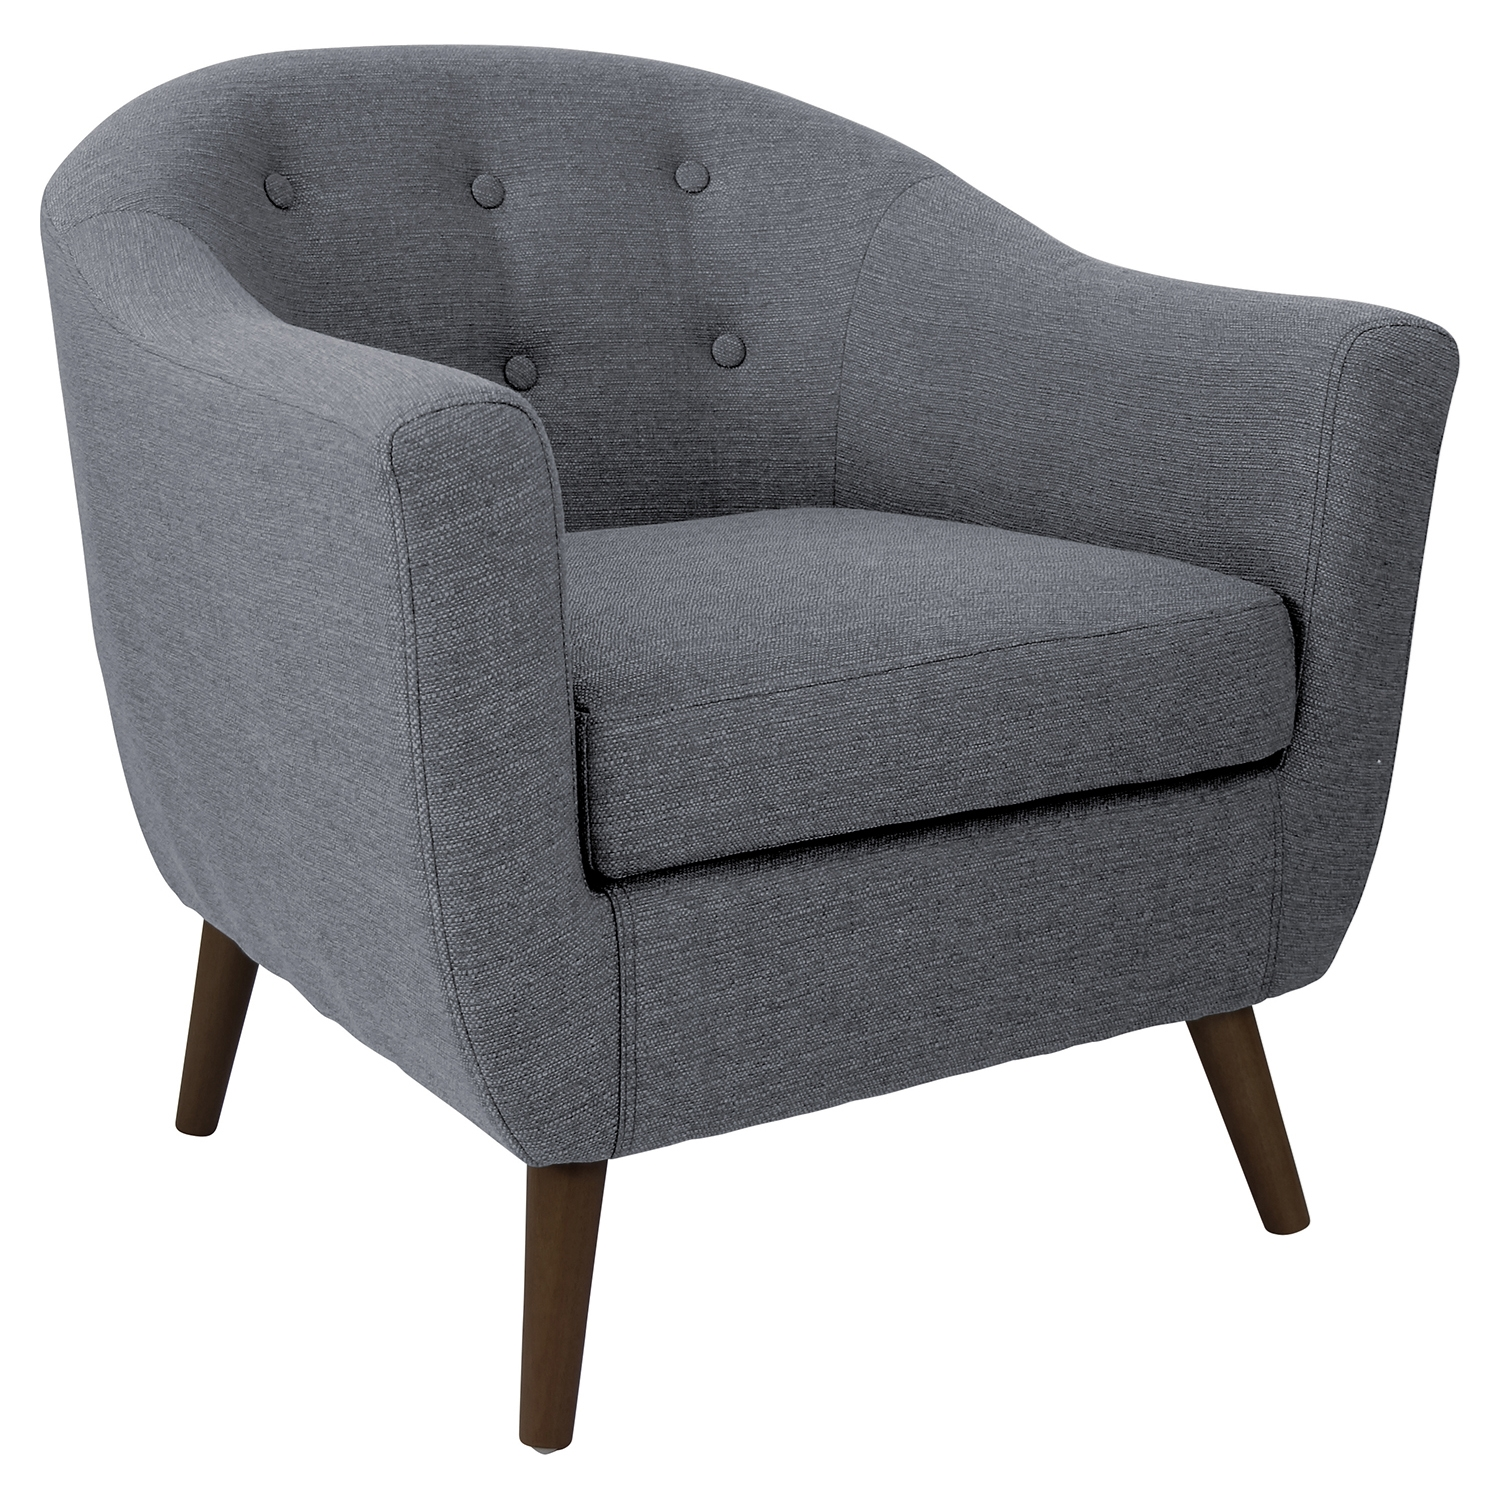 Rockwell Upholstery Armchair - Button Tufted, Gray